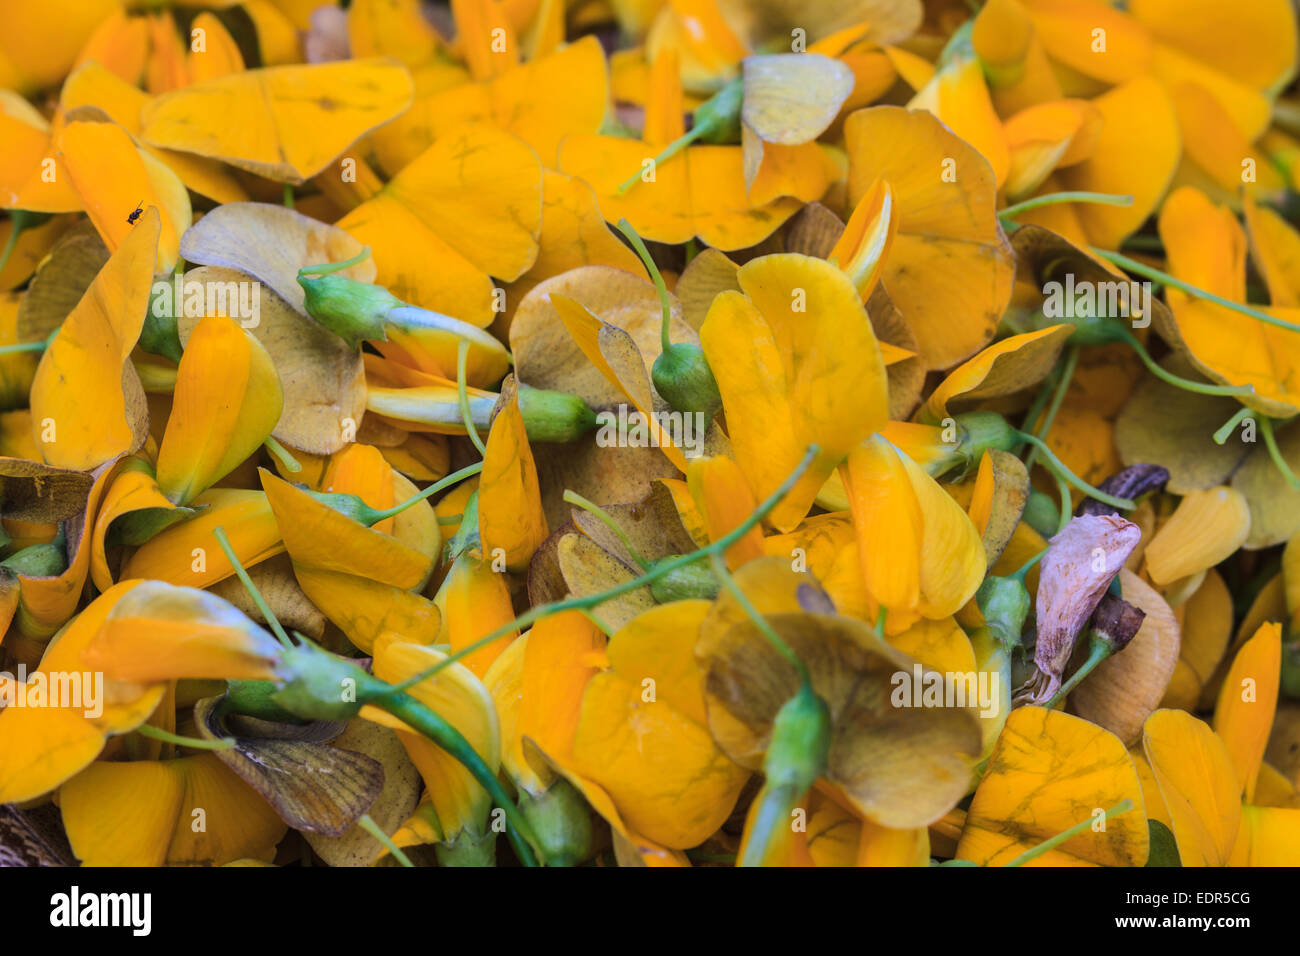 Sesbania flower vegetable used for food in thailand stock photo sesbania flower vegetable used for food in thailand mightylinksfo